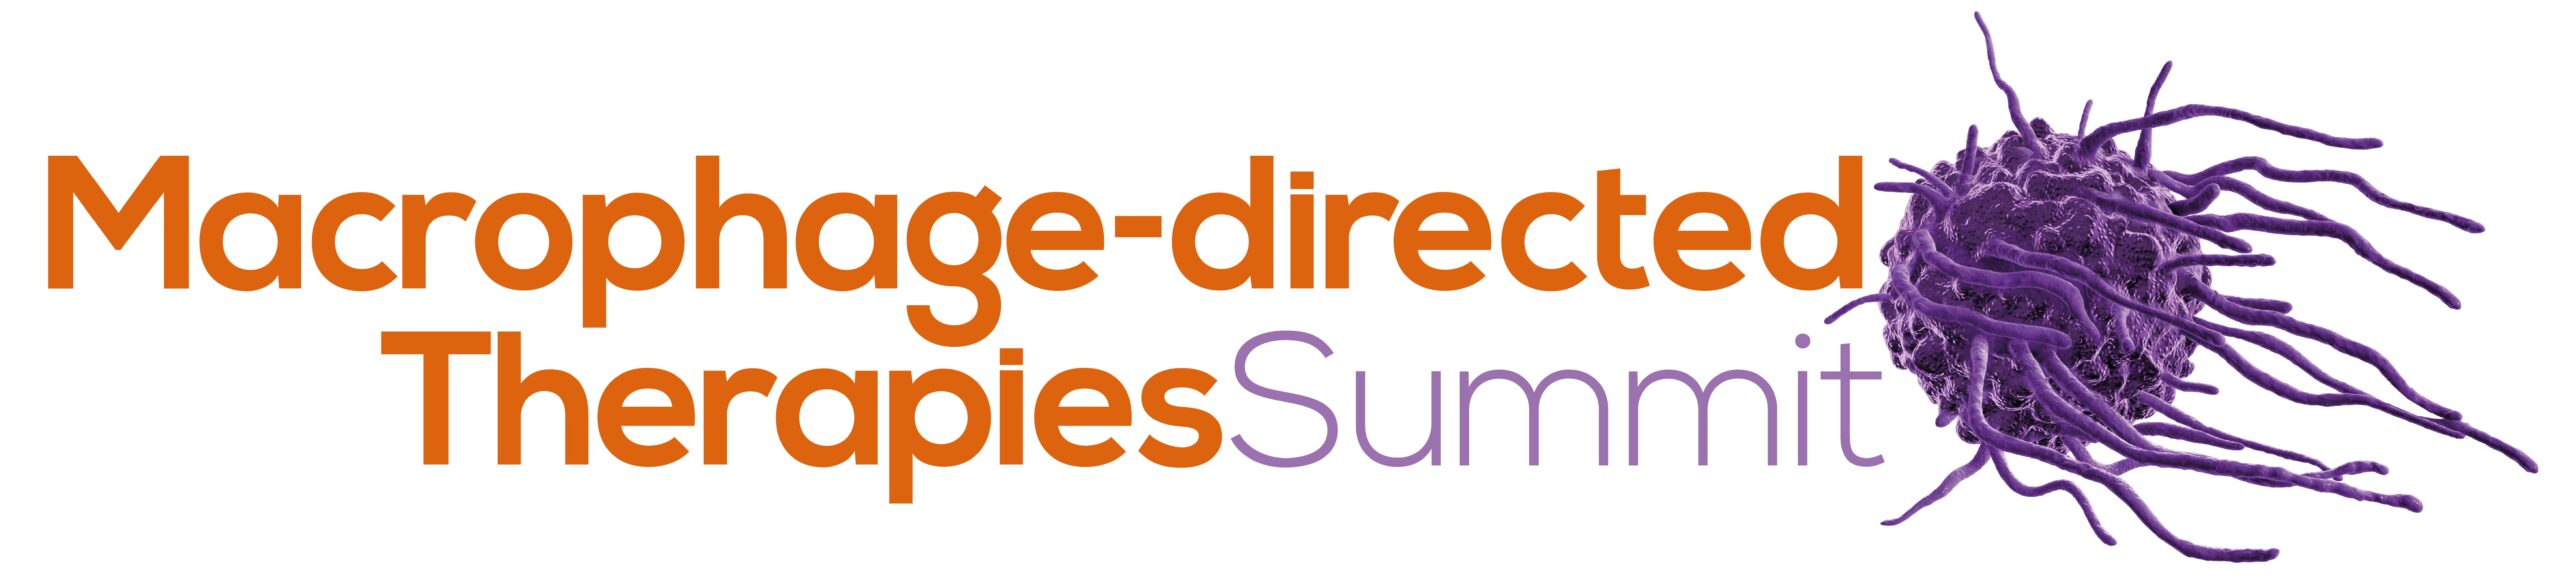 2nd Macrophage-directed Therapies Summit